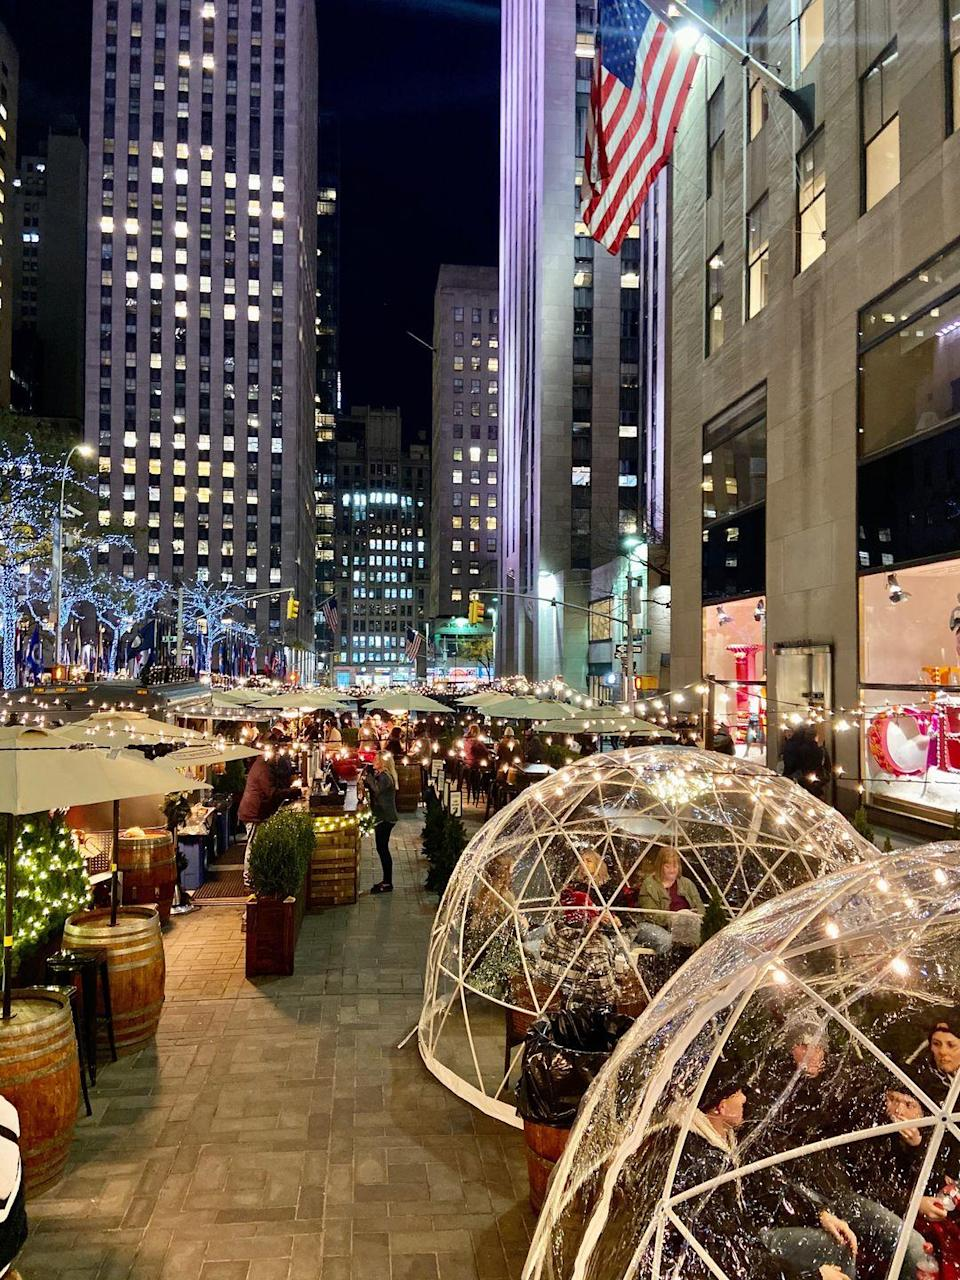 """<p>Take a break from your holiday shopping and slip into one of the heat, full-service igloos at City Winery's pop-up at Rockefeller Center. In addition to the locally-crafted wines on tap, mulled wine, and hot cider, the igloos, which will be in place until New Years, also offer a view of the iconic Rockefeller Center skating rink for a magical seasonal outing. </p><p><em>Rockefeller Plaza. Reservations for up to 8 people can be made in advance through <a href=""""mailto:rockcenter@citywinery.com"""" data-ylk=""""slk:rockcenter@citywinery.com"""" class=""""link rapid-noclick-resp"""">rockcenter@citywinery.com</a>. </em></p>"""